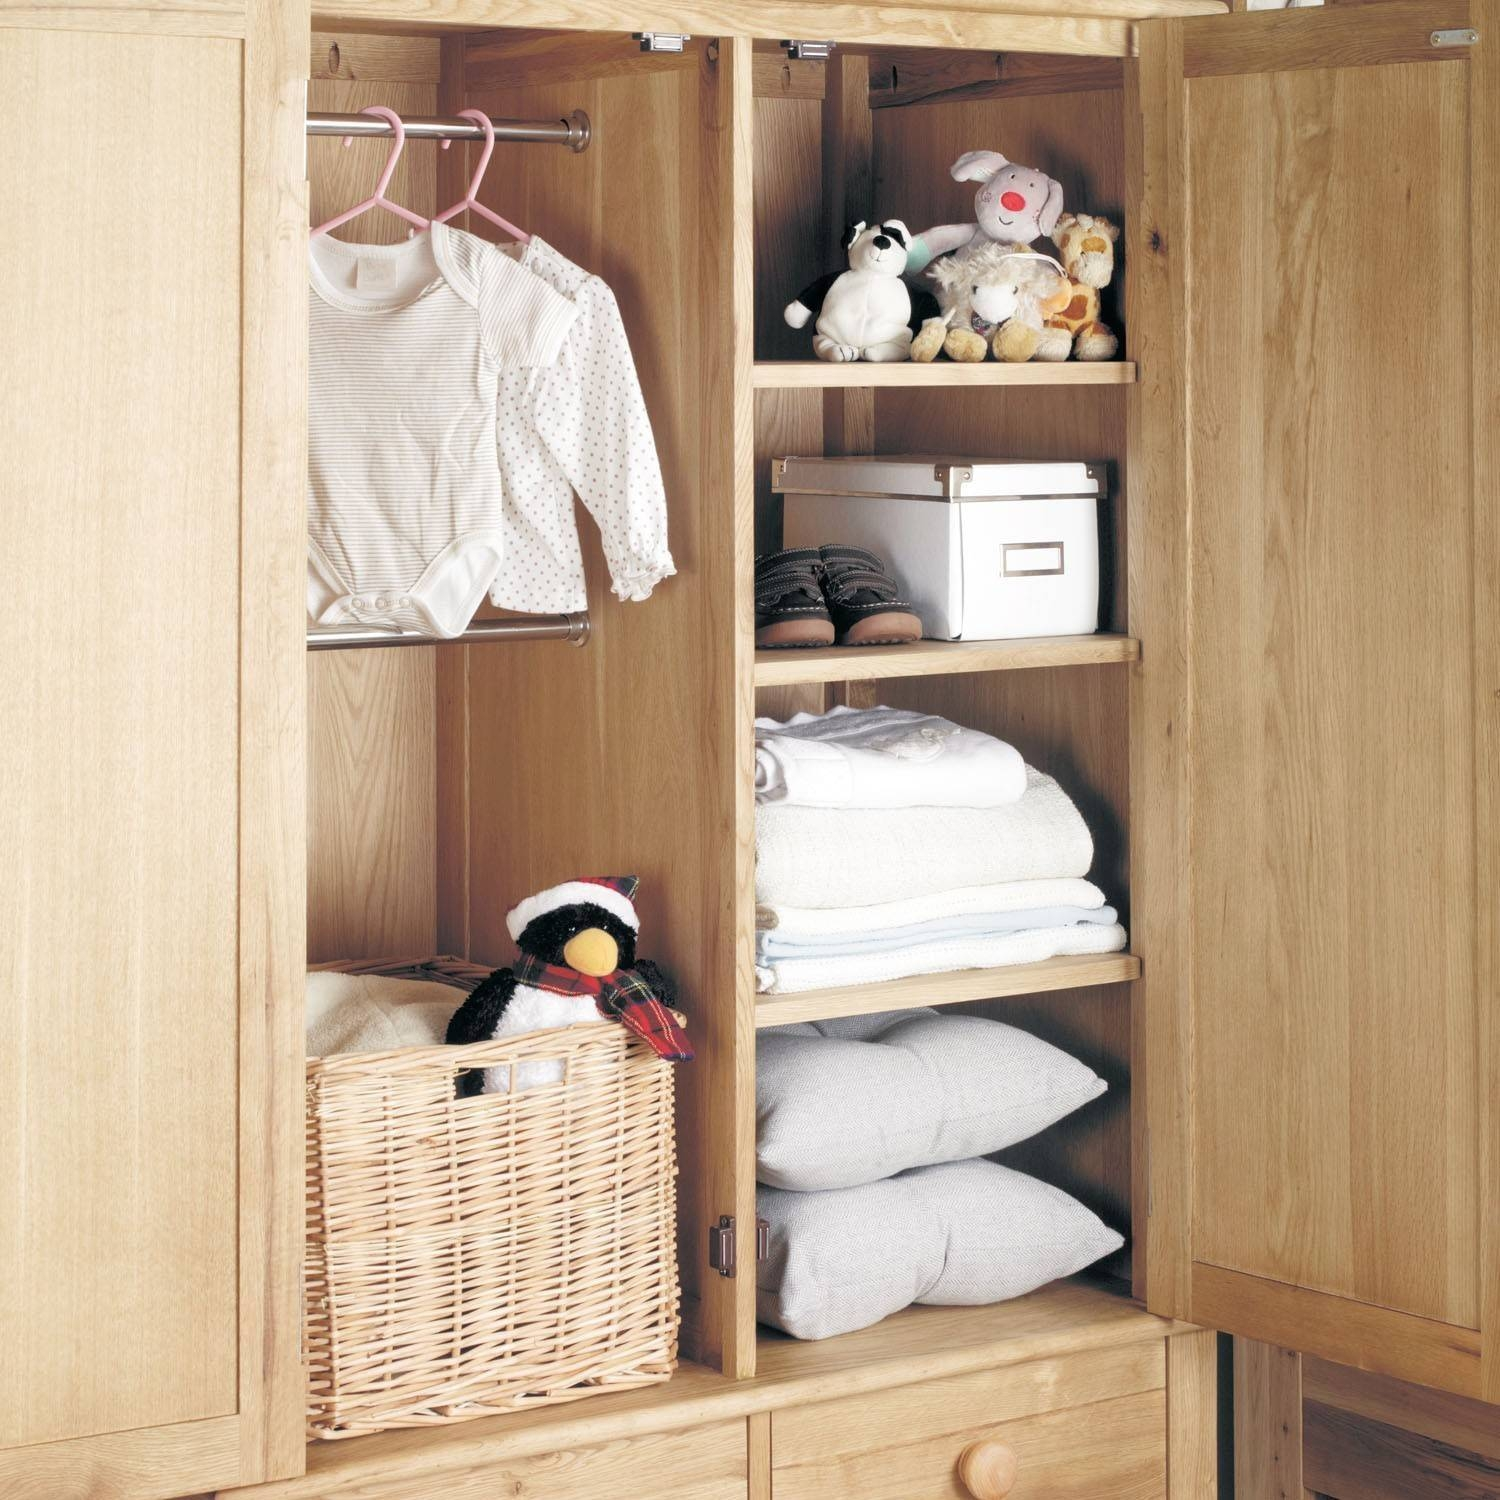 30 Best Childrens Wardrobes With Drawers And Shelves pertaining to Double Wardrobe With Drawers And Shelves (Image 2 of 30)